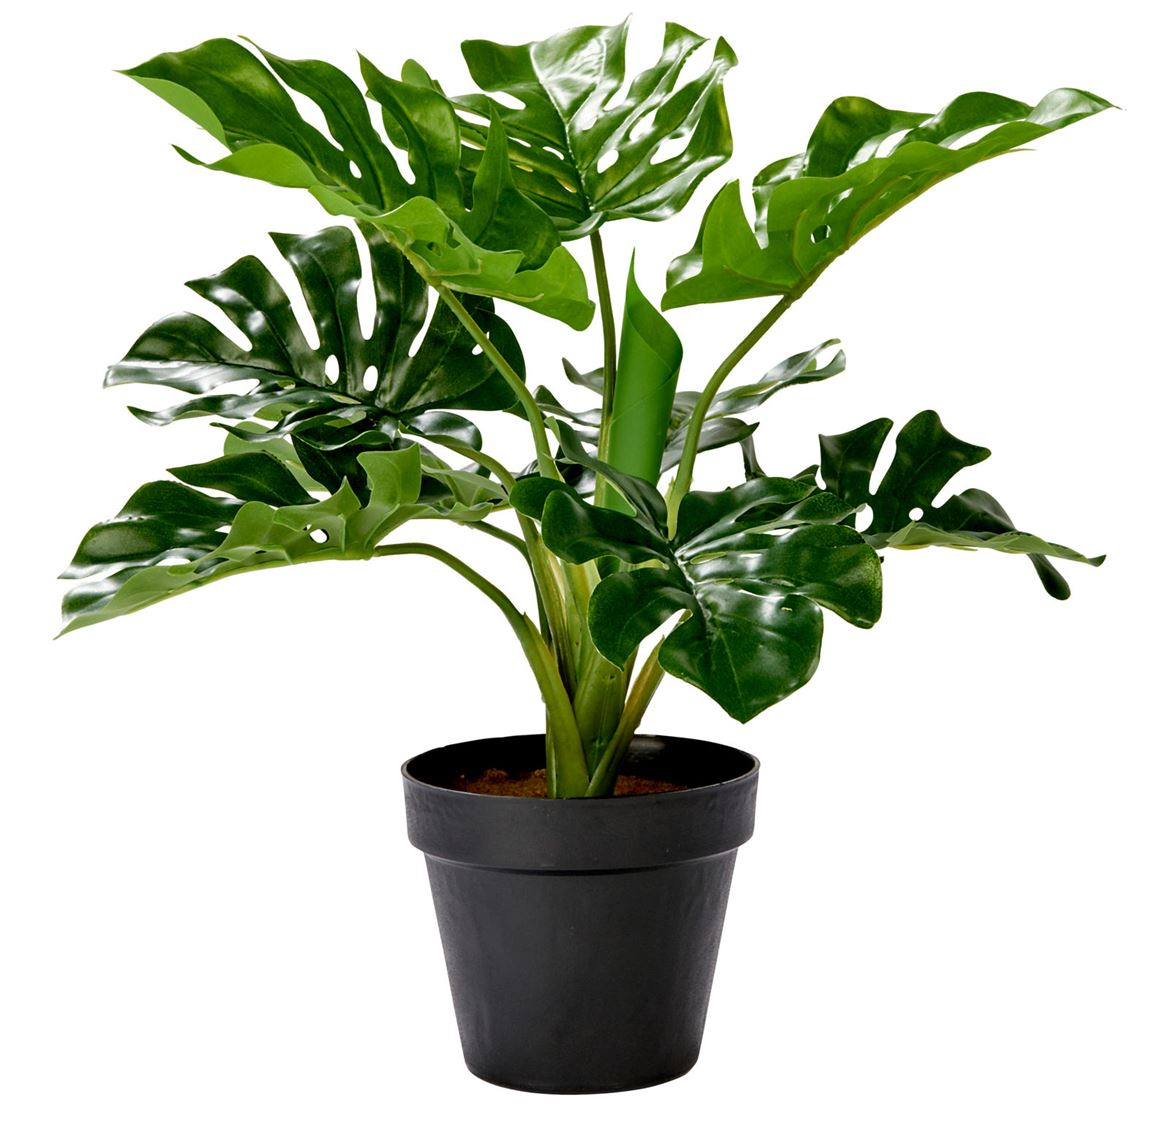 TROPICAL Plant in pot groen H 37 cm; Ø 12,5 cm_tropical-plant-in-pot-groen-h-37-cm;-ø-12,5-cm